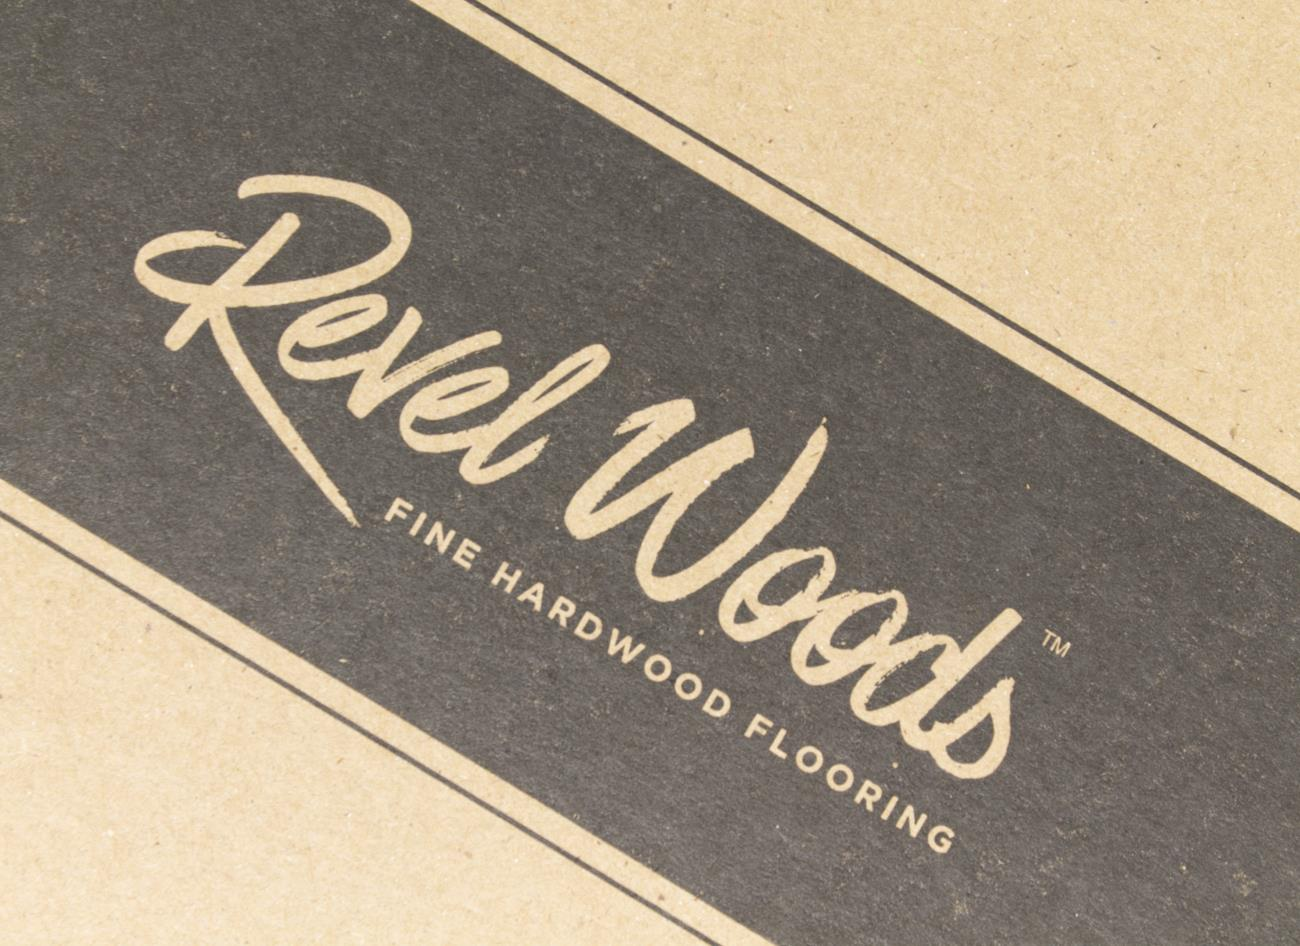 Revel Woods Looks To Disrupt Retail Norms